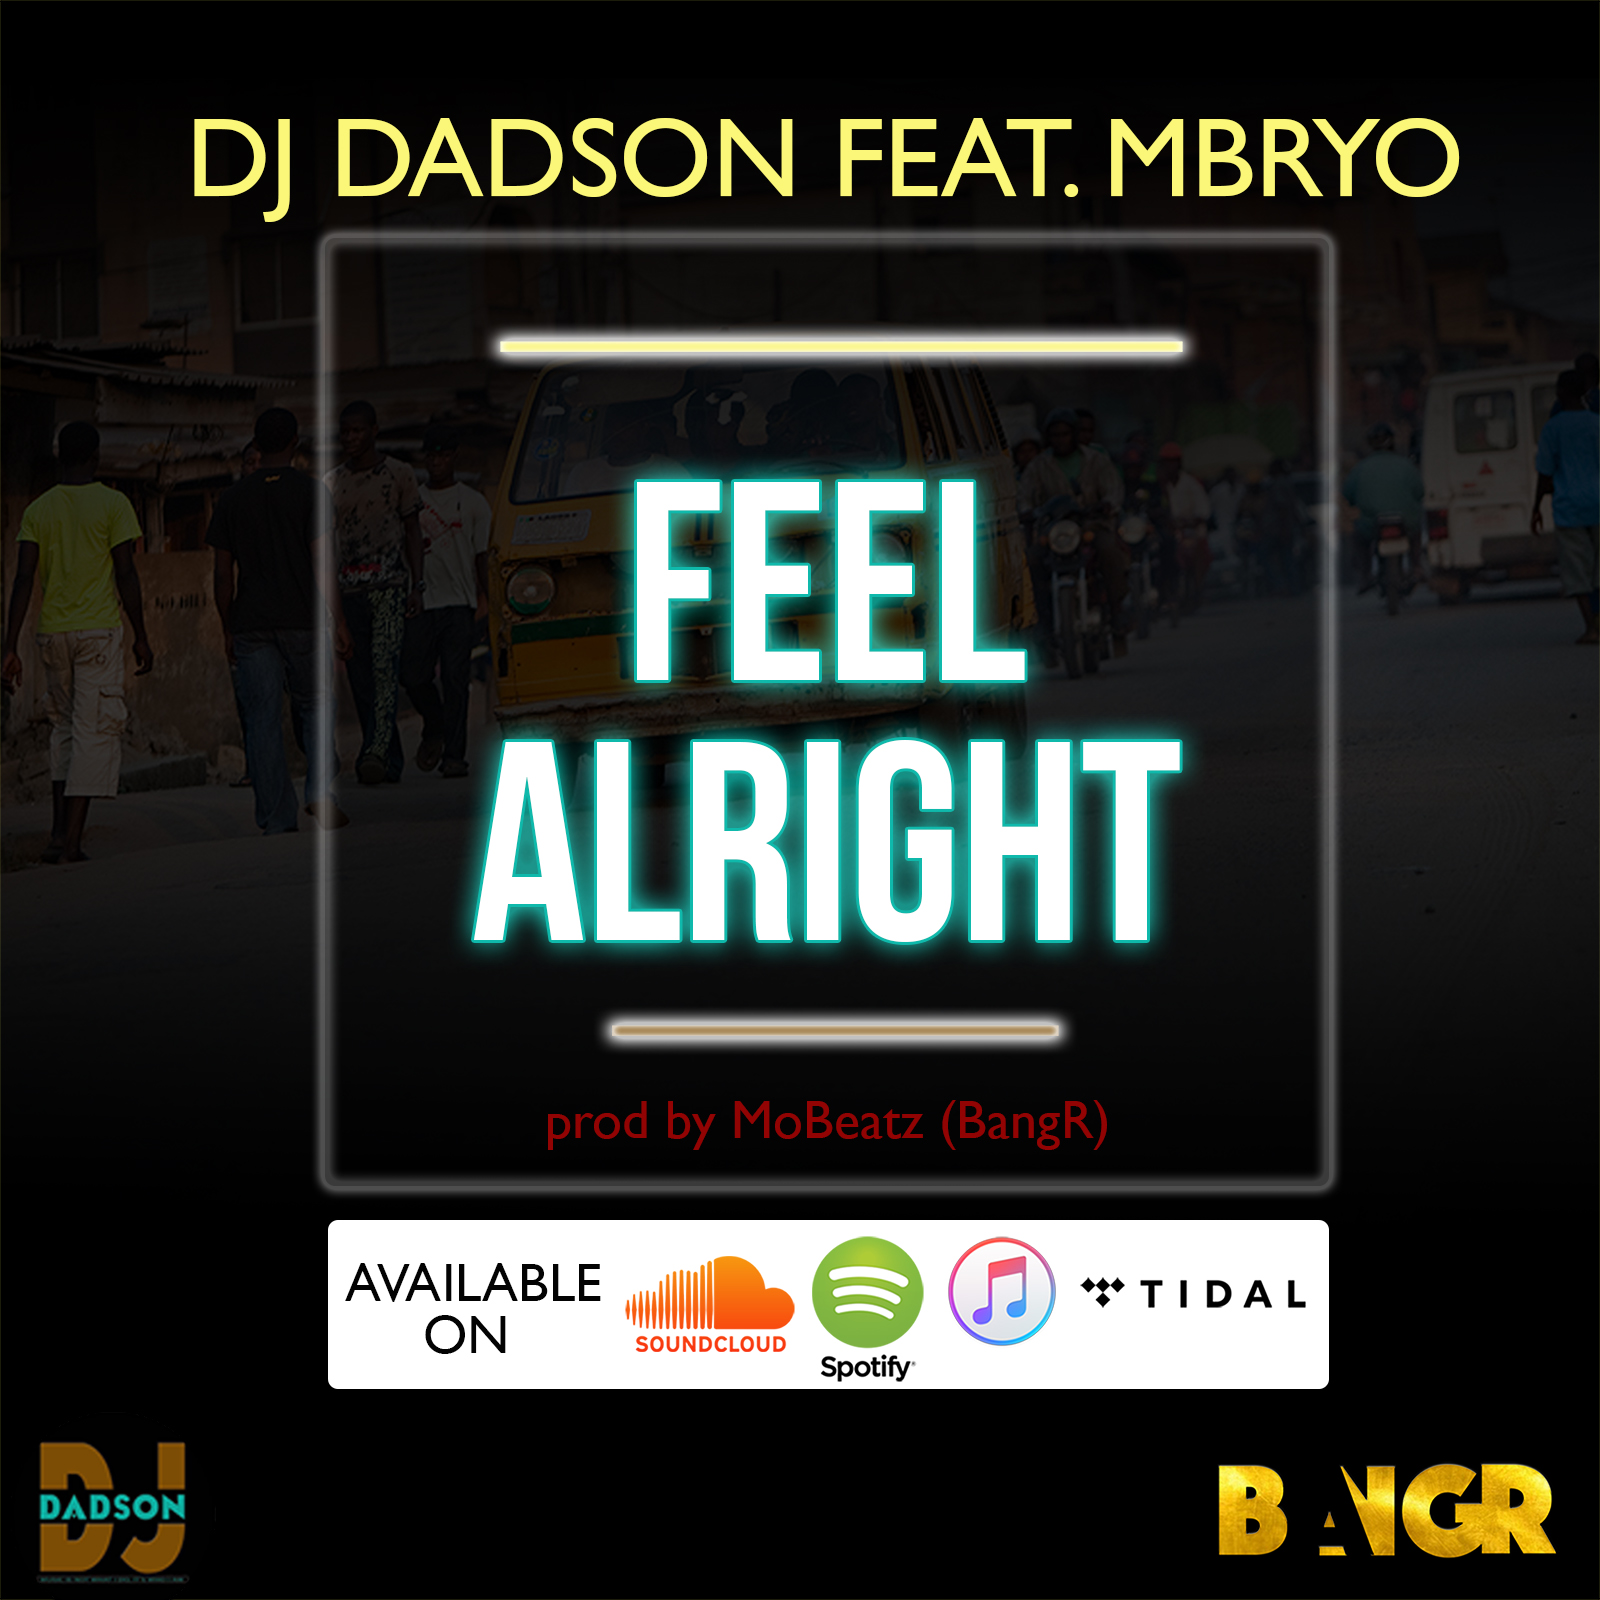 "DJ Dadson ""Feel Alright"" Ft Mbryo Prod by Mobeatz (BangR) @I_am_dadson @musicvideohype @MVHeurope"